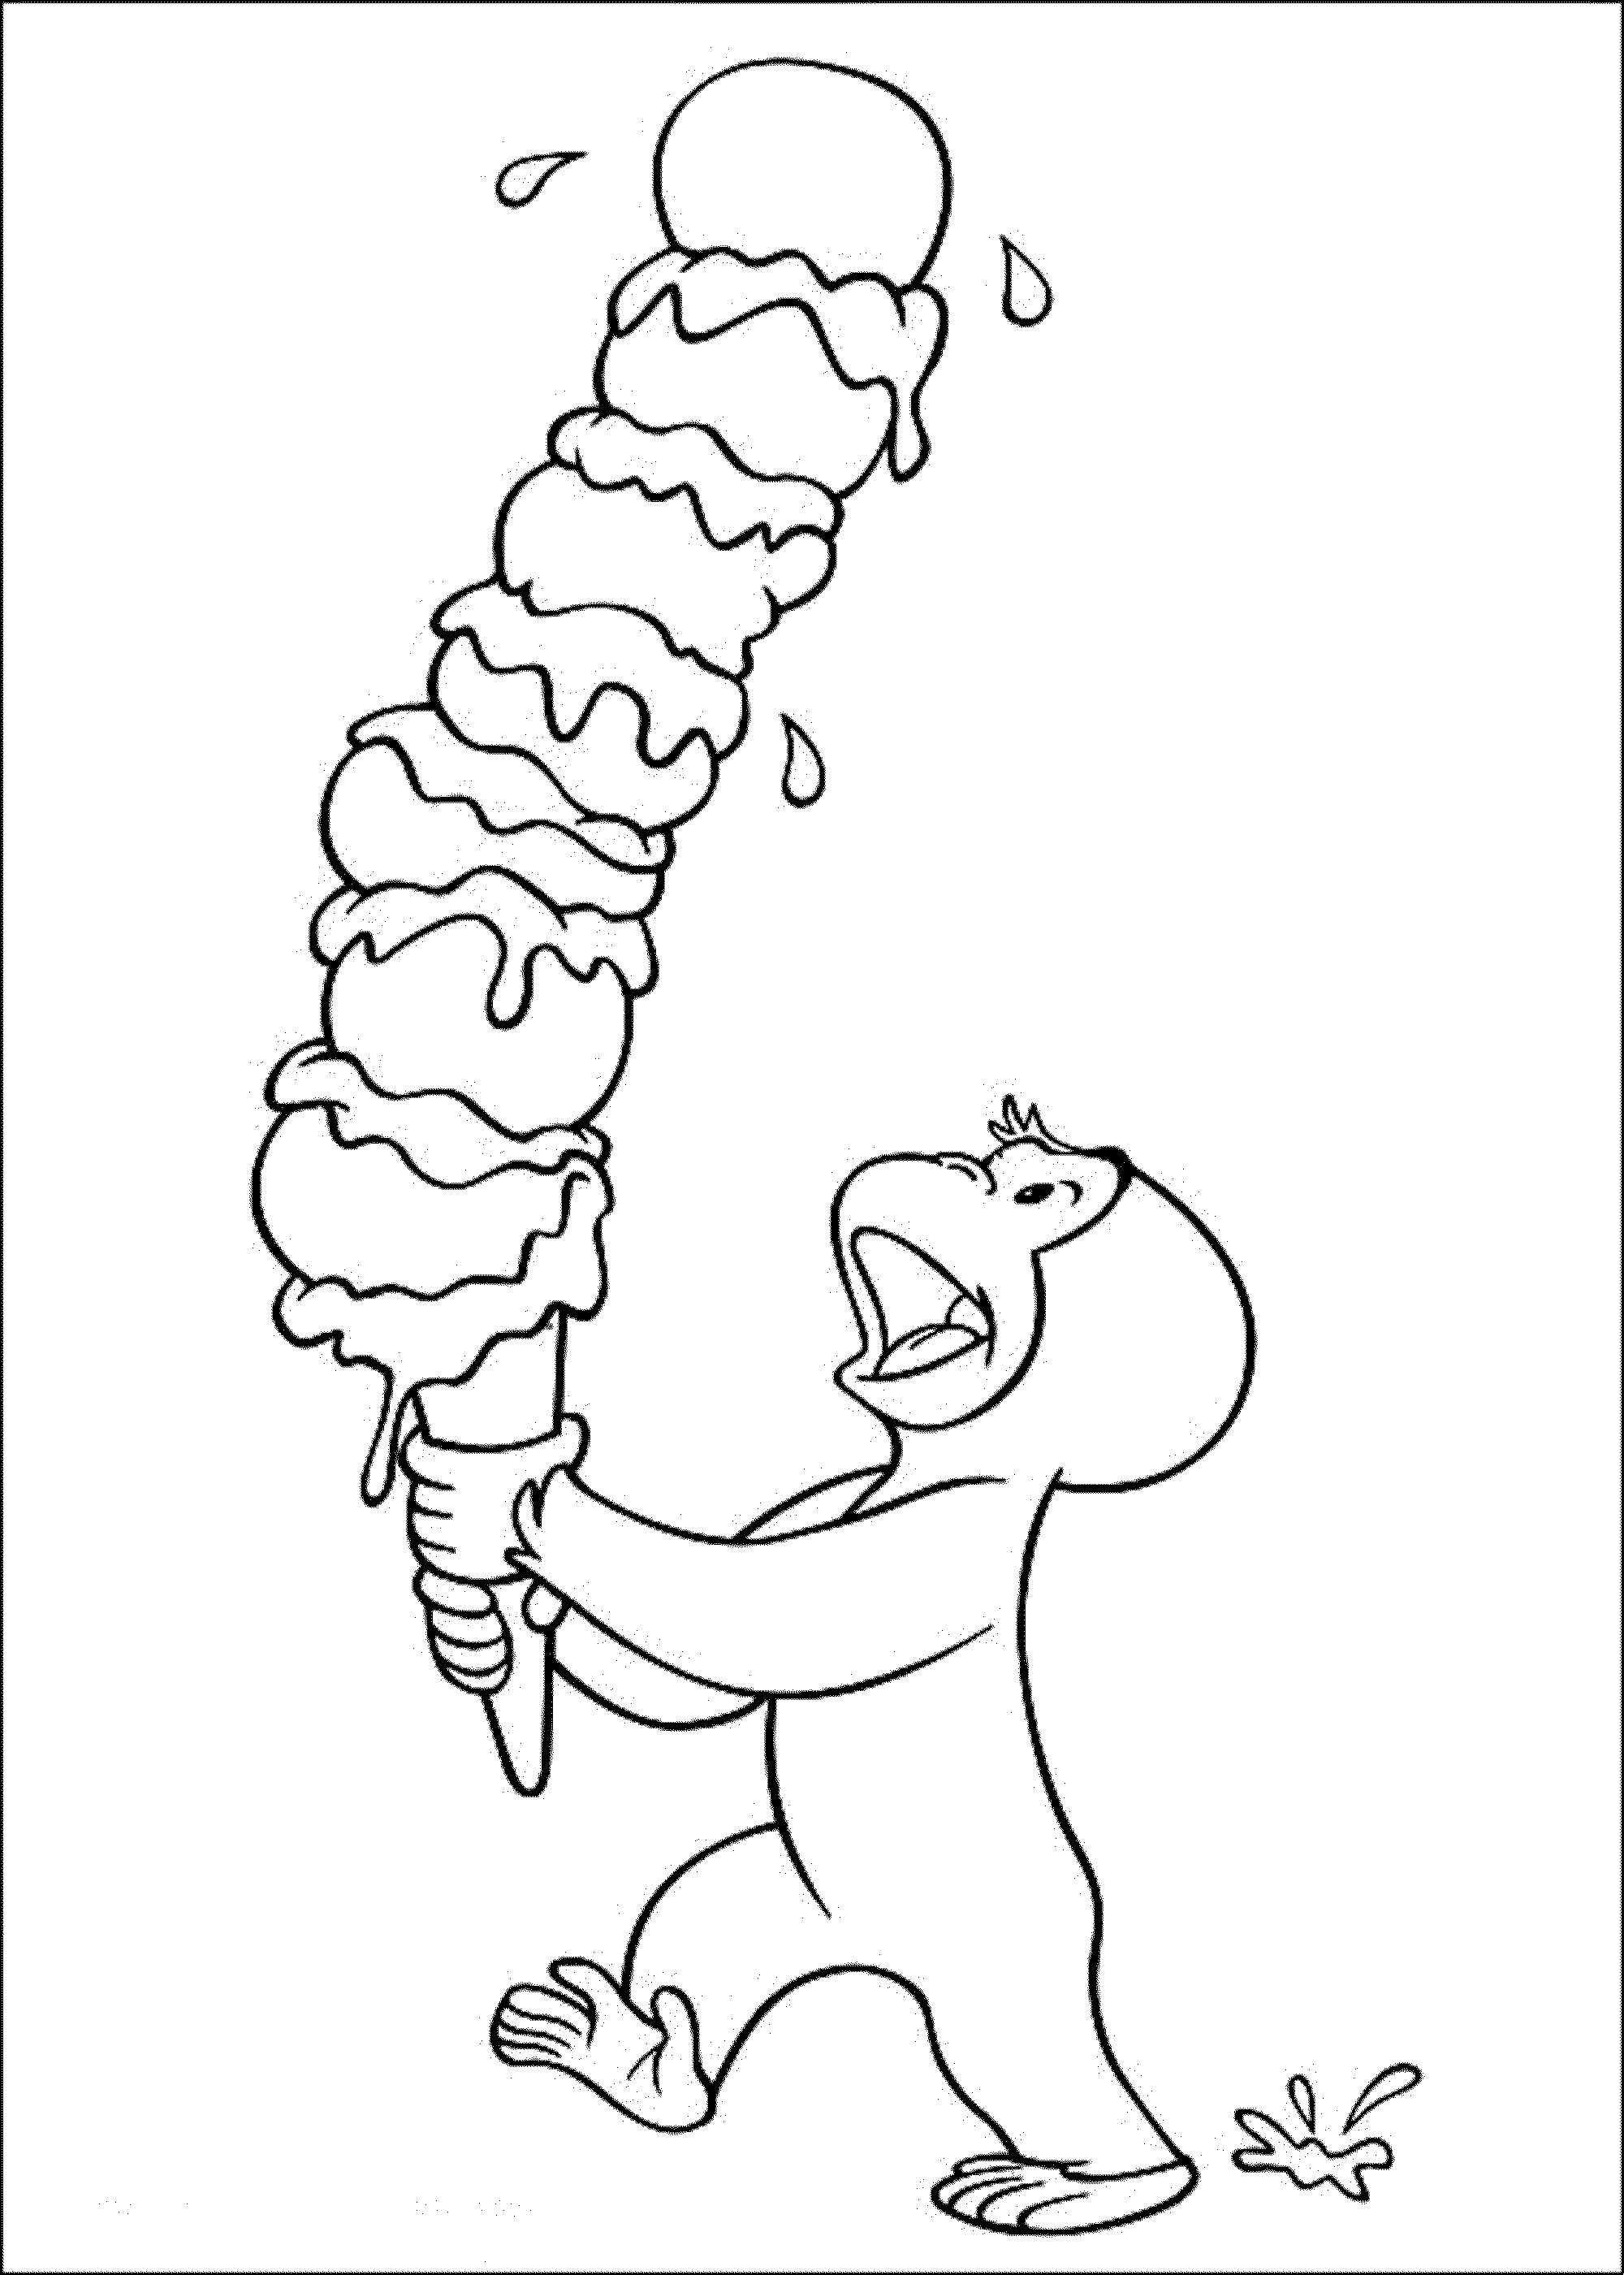 Print & Download - Curious George Coloring Pages to ...